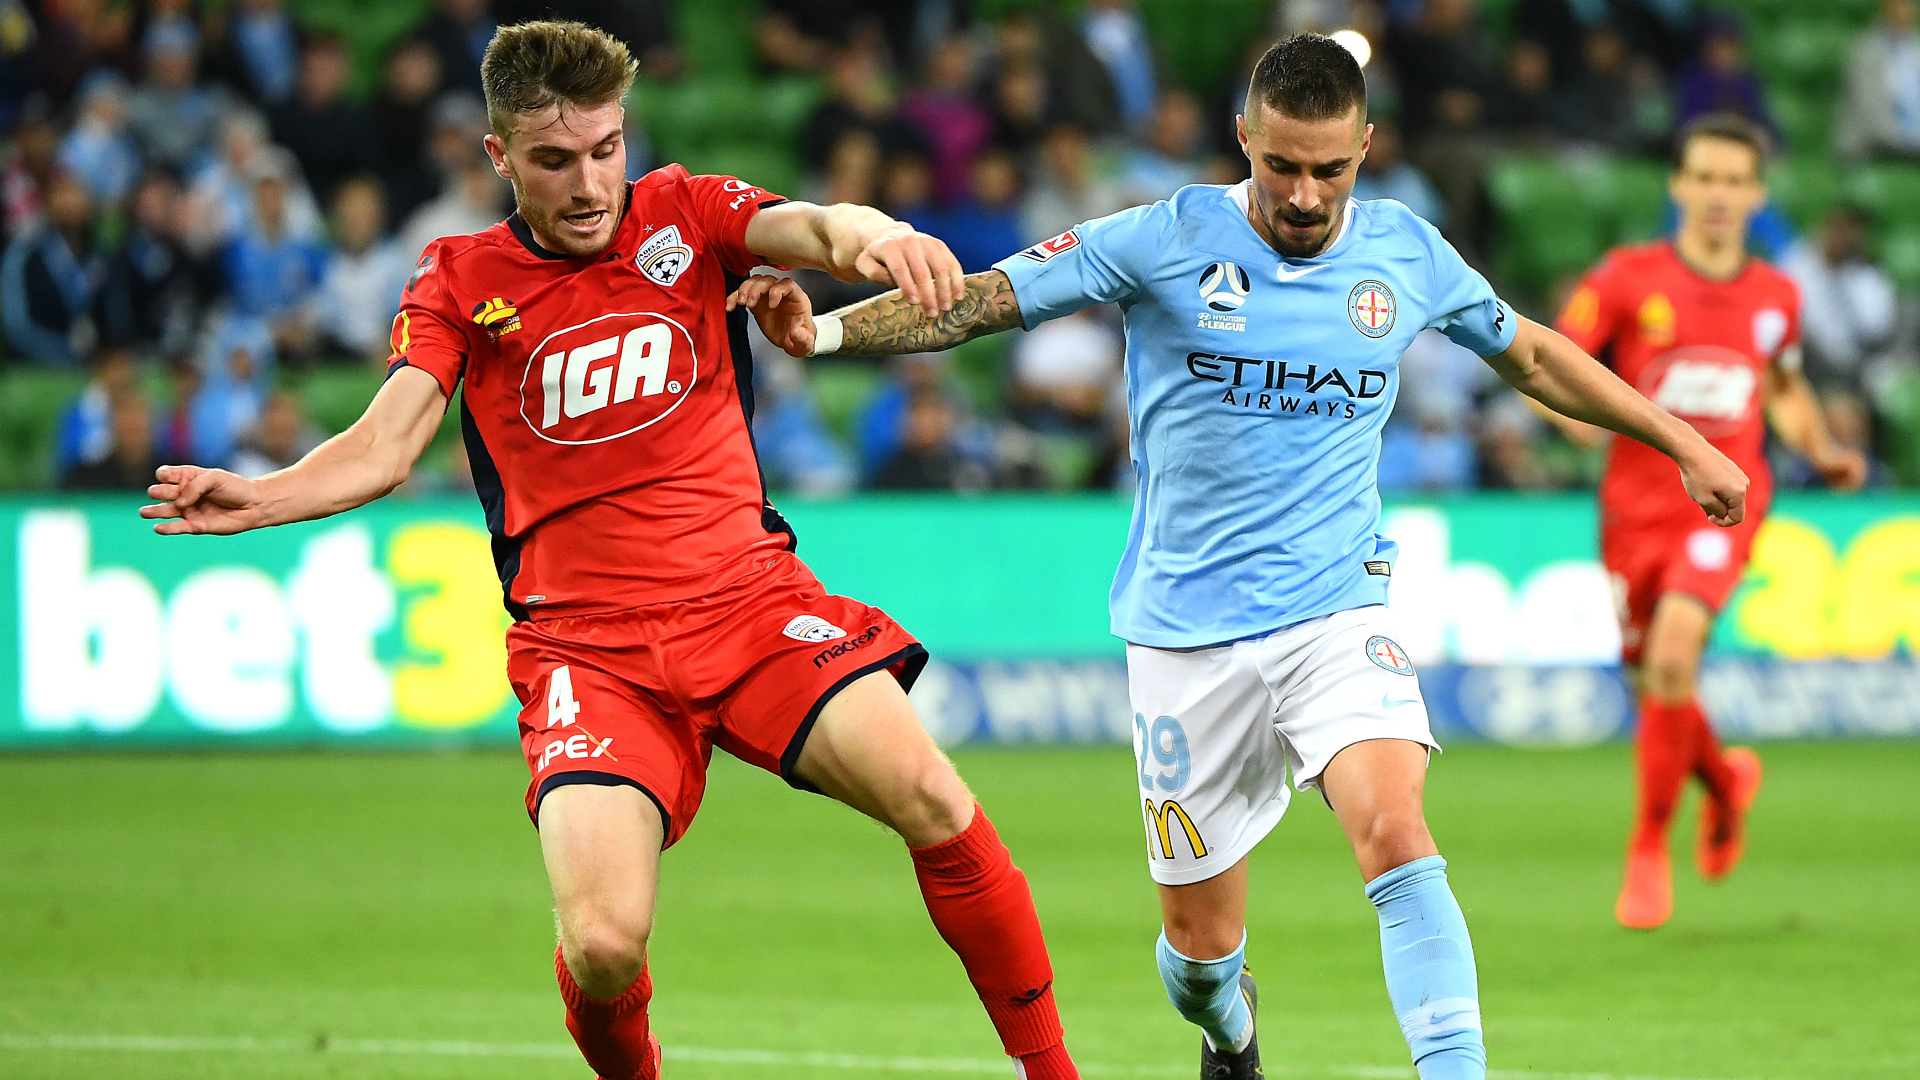 A-League Review: Maclaren rescues point on return, Wanderers ease past Mariners